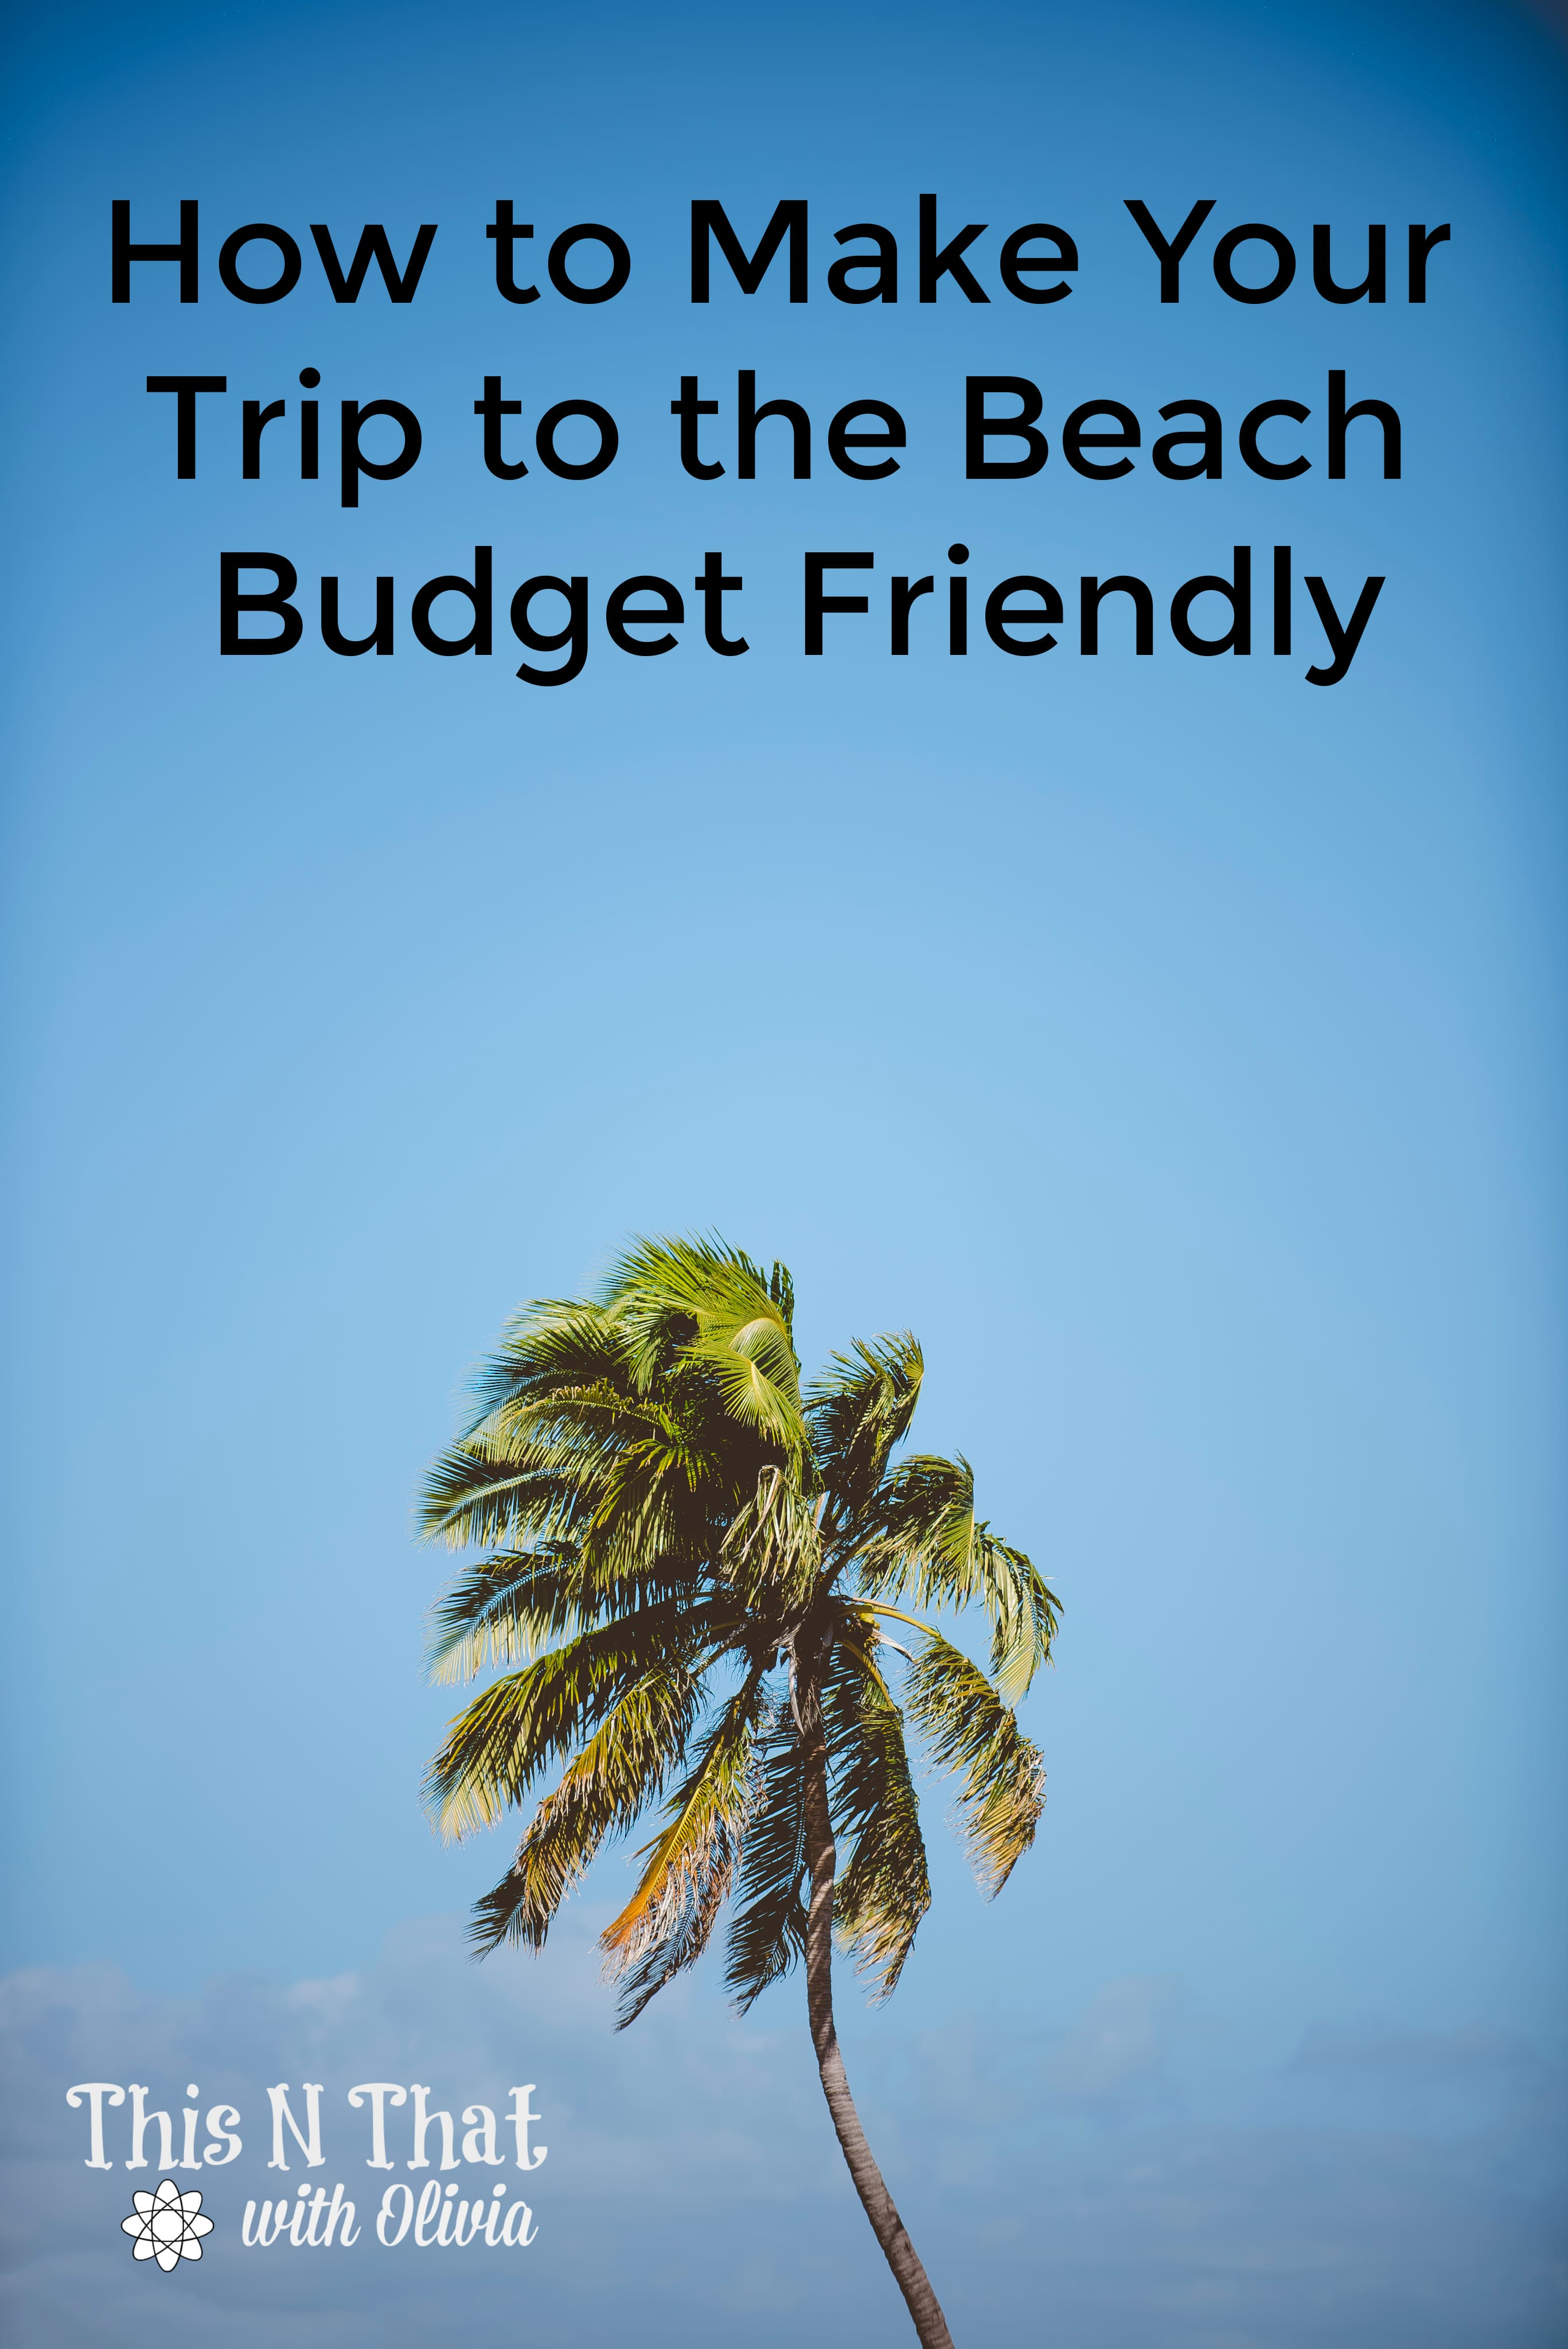 How to Make Your Trip to the Beach Budget Friendly